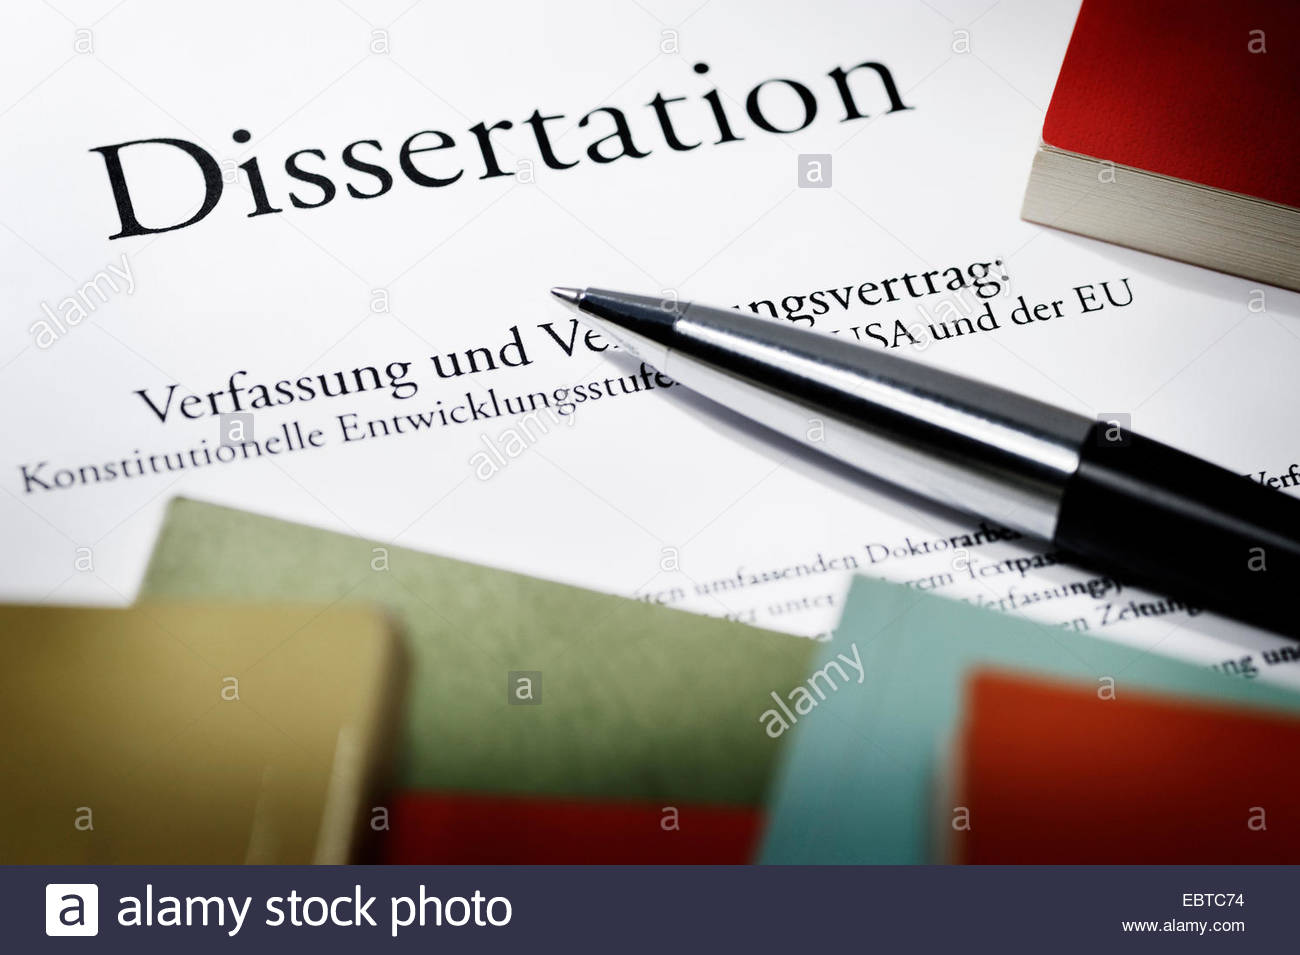 Dissertation with books and pen symbol picture plagiarism stock dissertation with books and pen symbol picture plagiarism biocorpaavc Choice Image